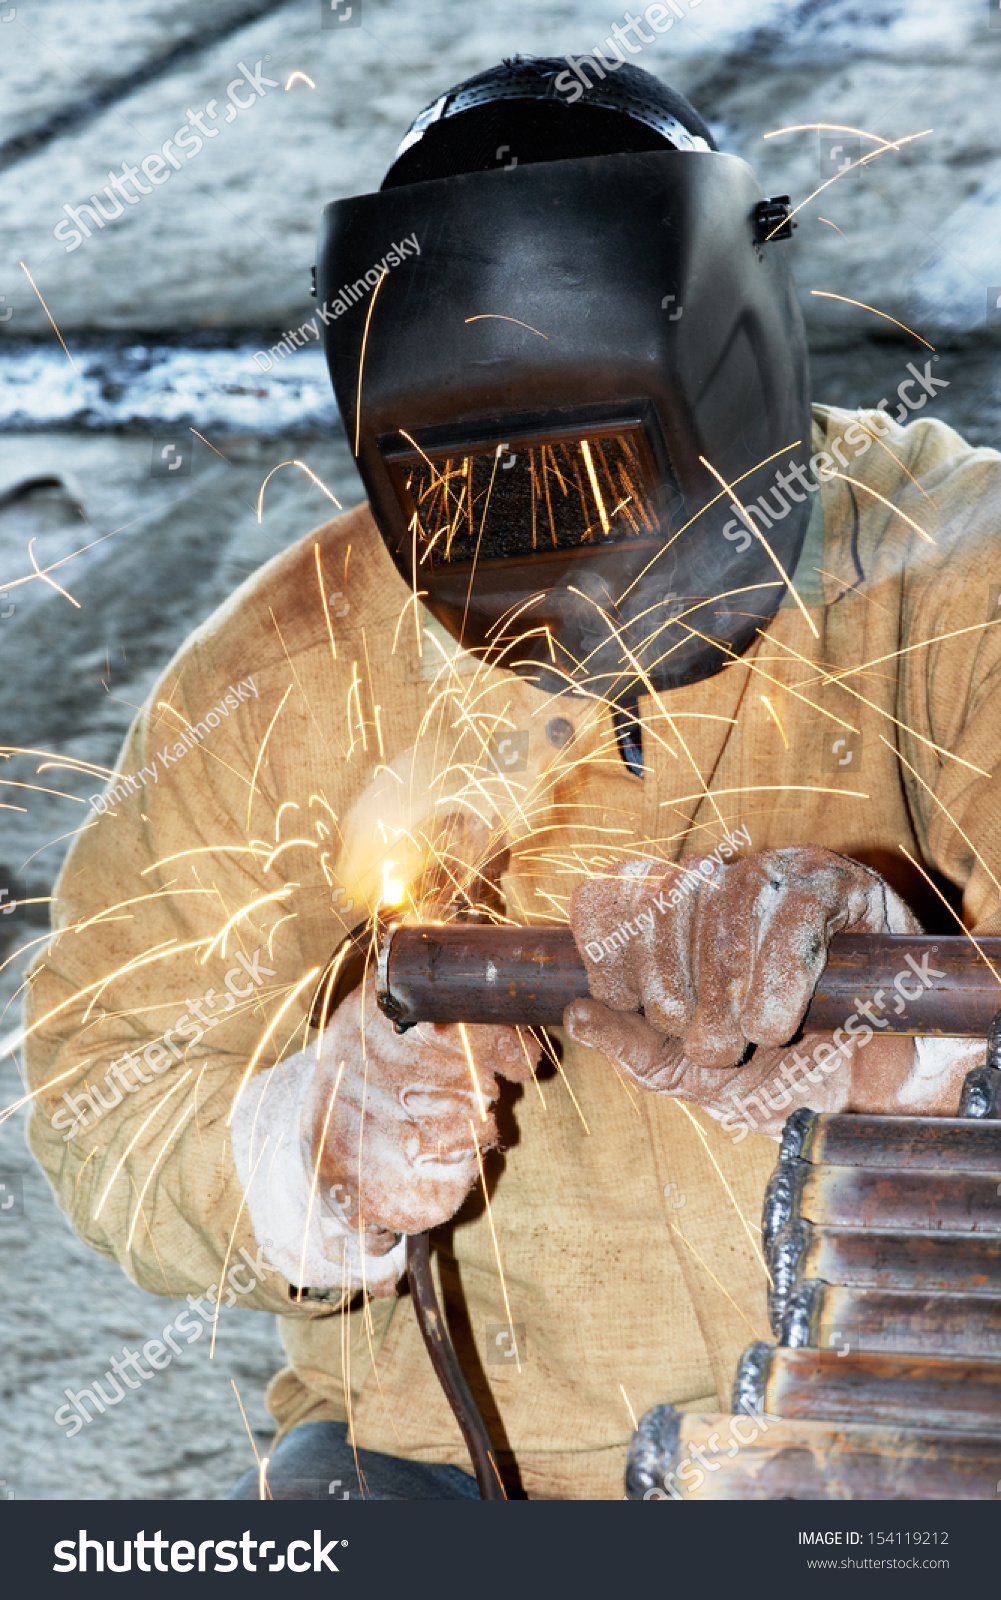 welder worker welding metal by electrode with bright electric arc and sparks during manufacture. Black Bedroom Furniture Sets. Home Design Ideas